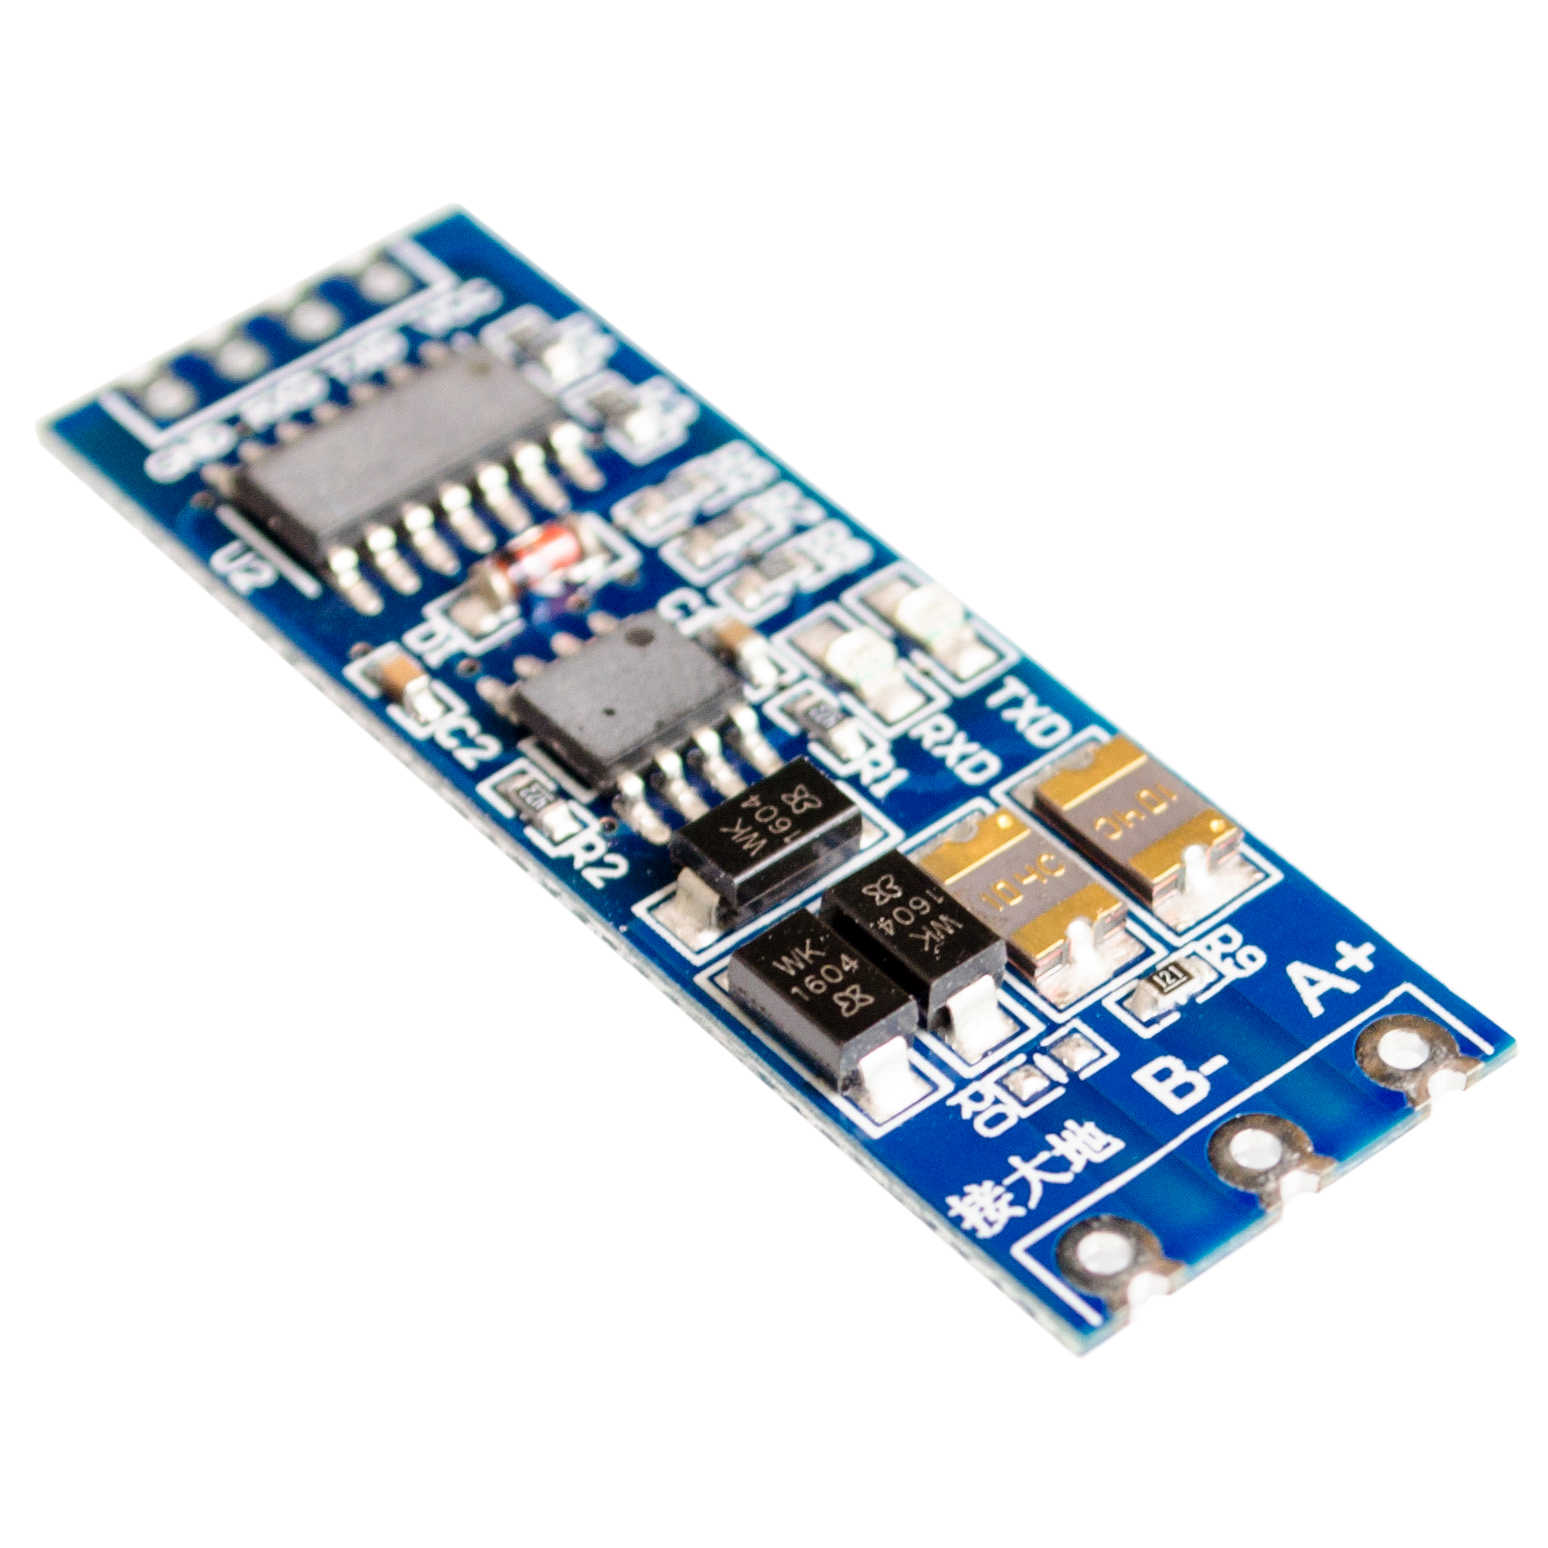 TTL turn RS485 module 485 to serial UART level mutual conversion hardware automatic flow control